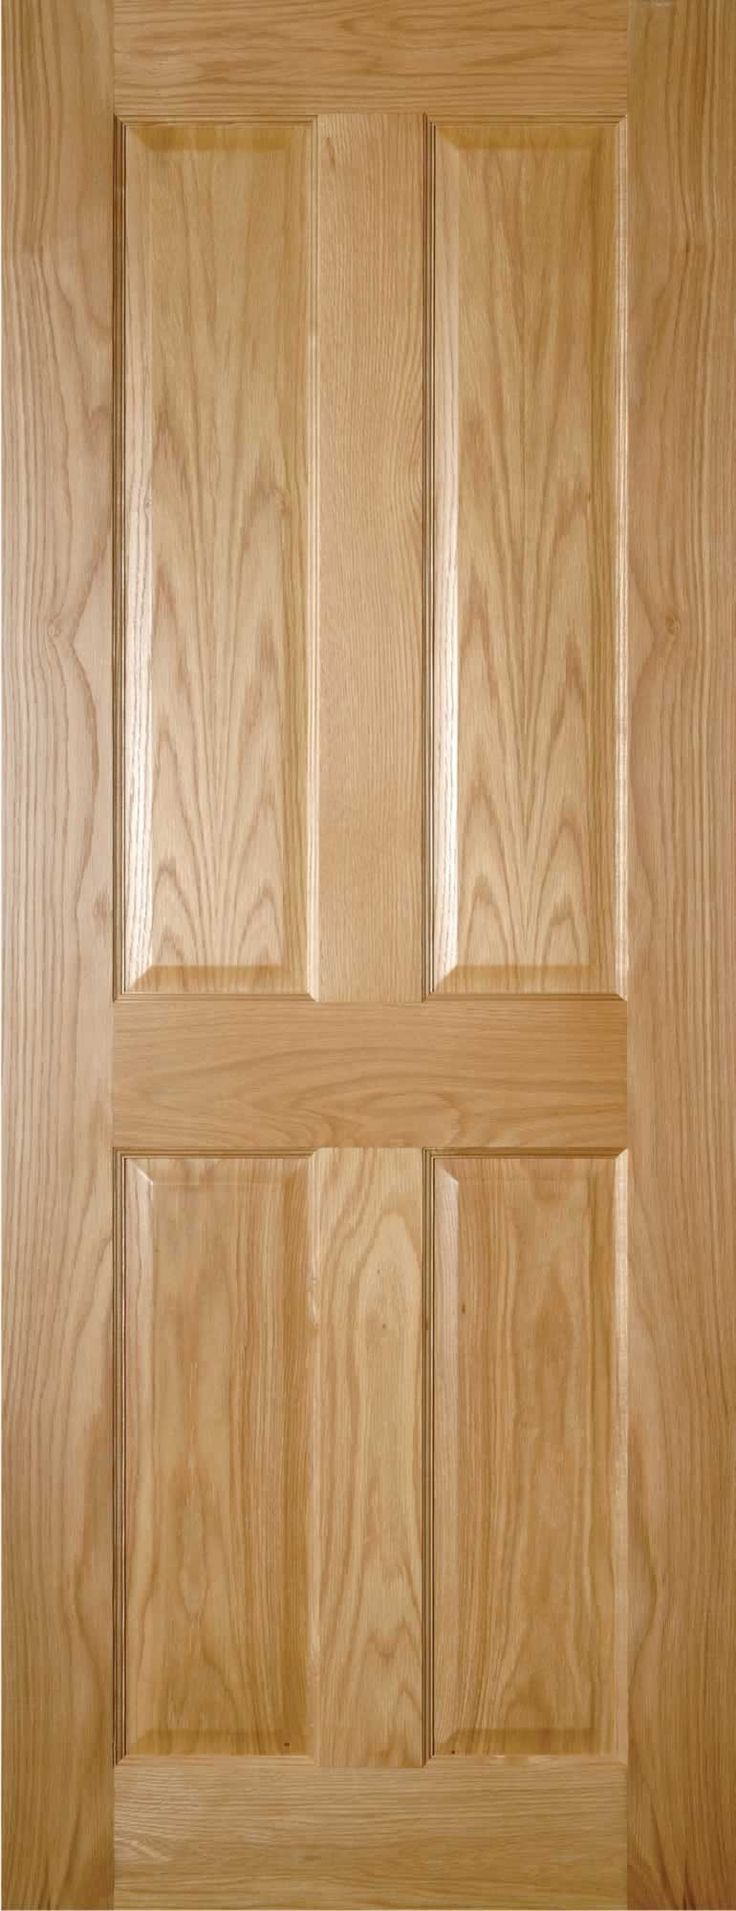 Kaybee Doors Suppliers Of Internal Doors And External Doors For Over 30 Years With National Delivery & Kaybee Doors Wrexham u0026 New Upvc Front Door Fitted And Supplied ... pezcame.com